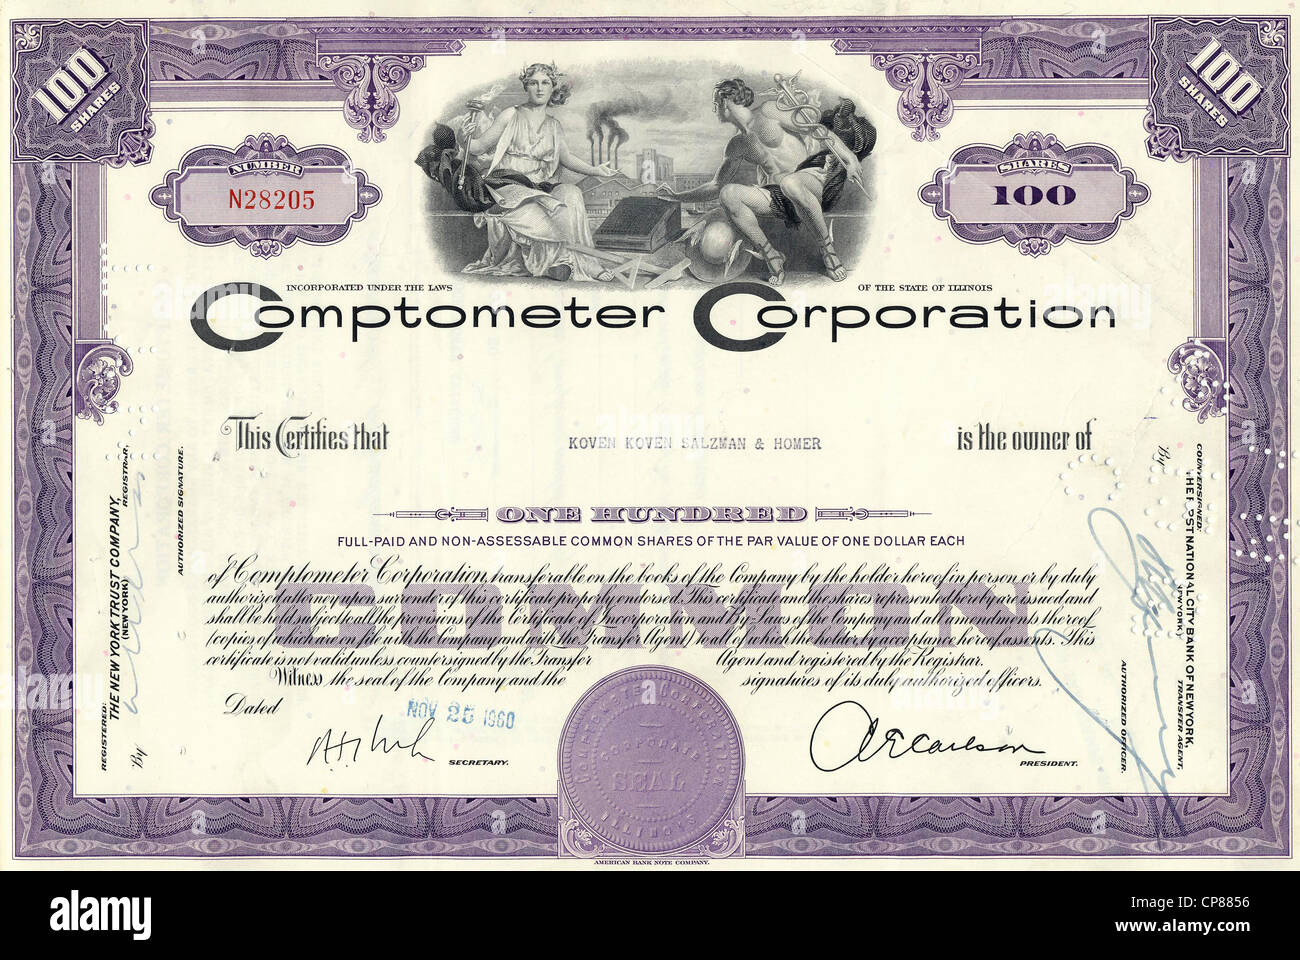 Historical stock certificate, the Greek gods Olympia and Hermes sitting with a mechanical adding machine in front - Stock Image